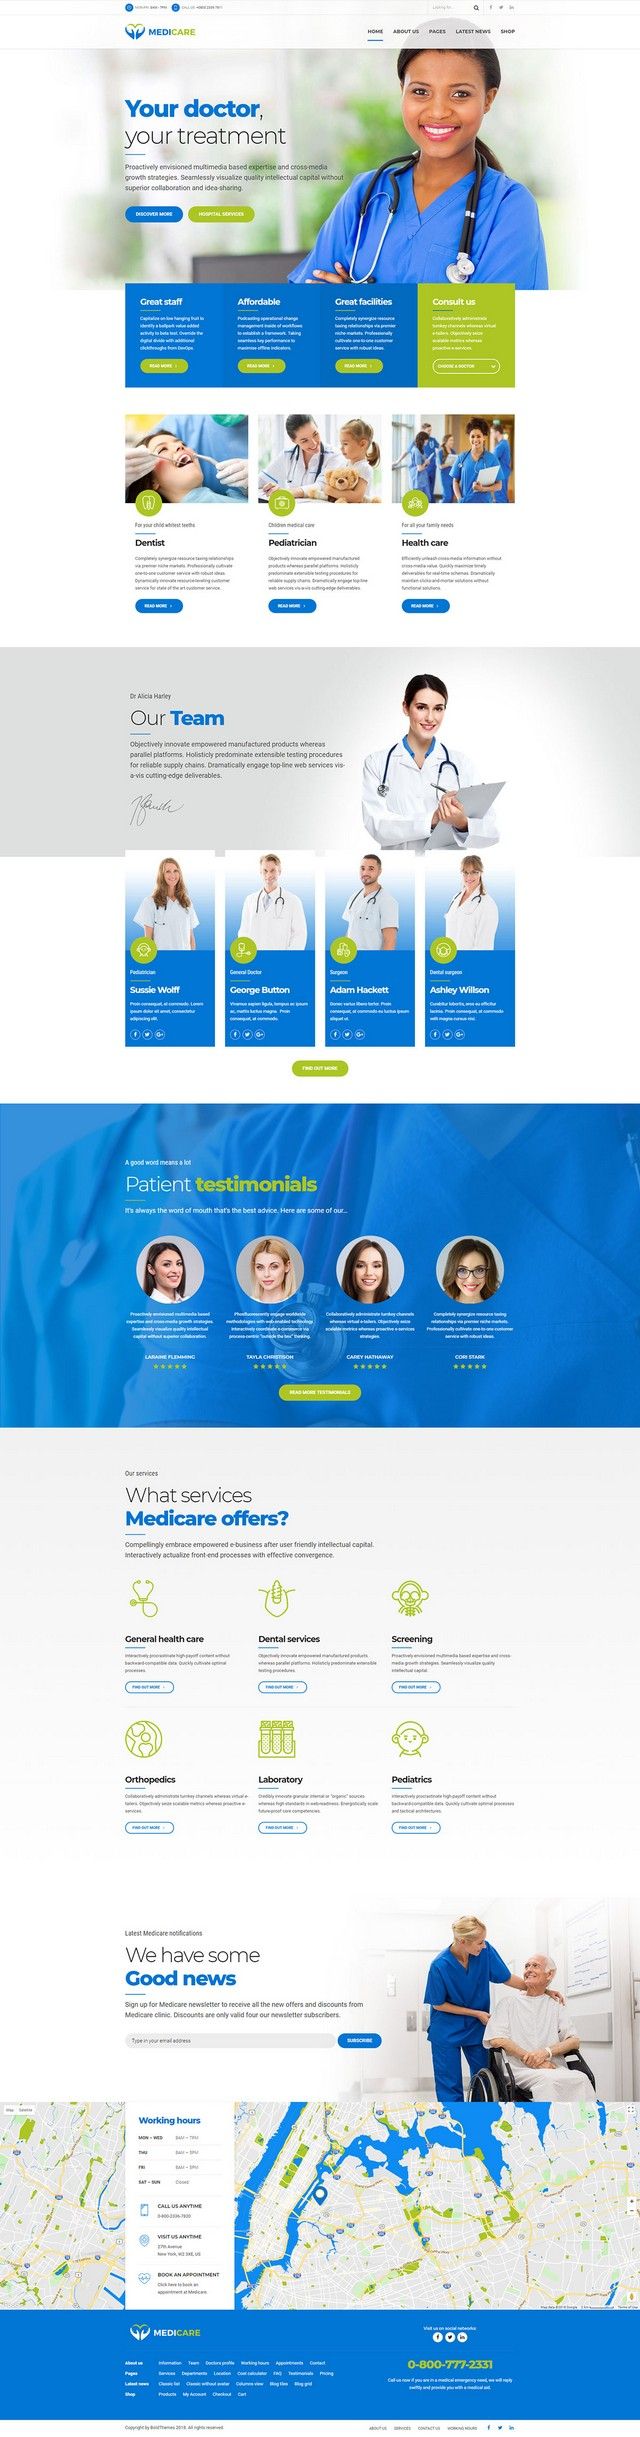 health and medical wordpress theme Medicare homepage layout for general hospital